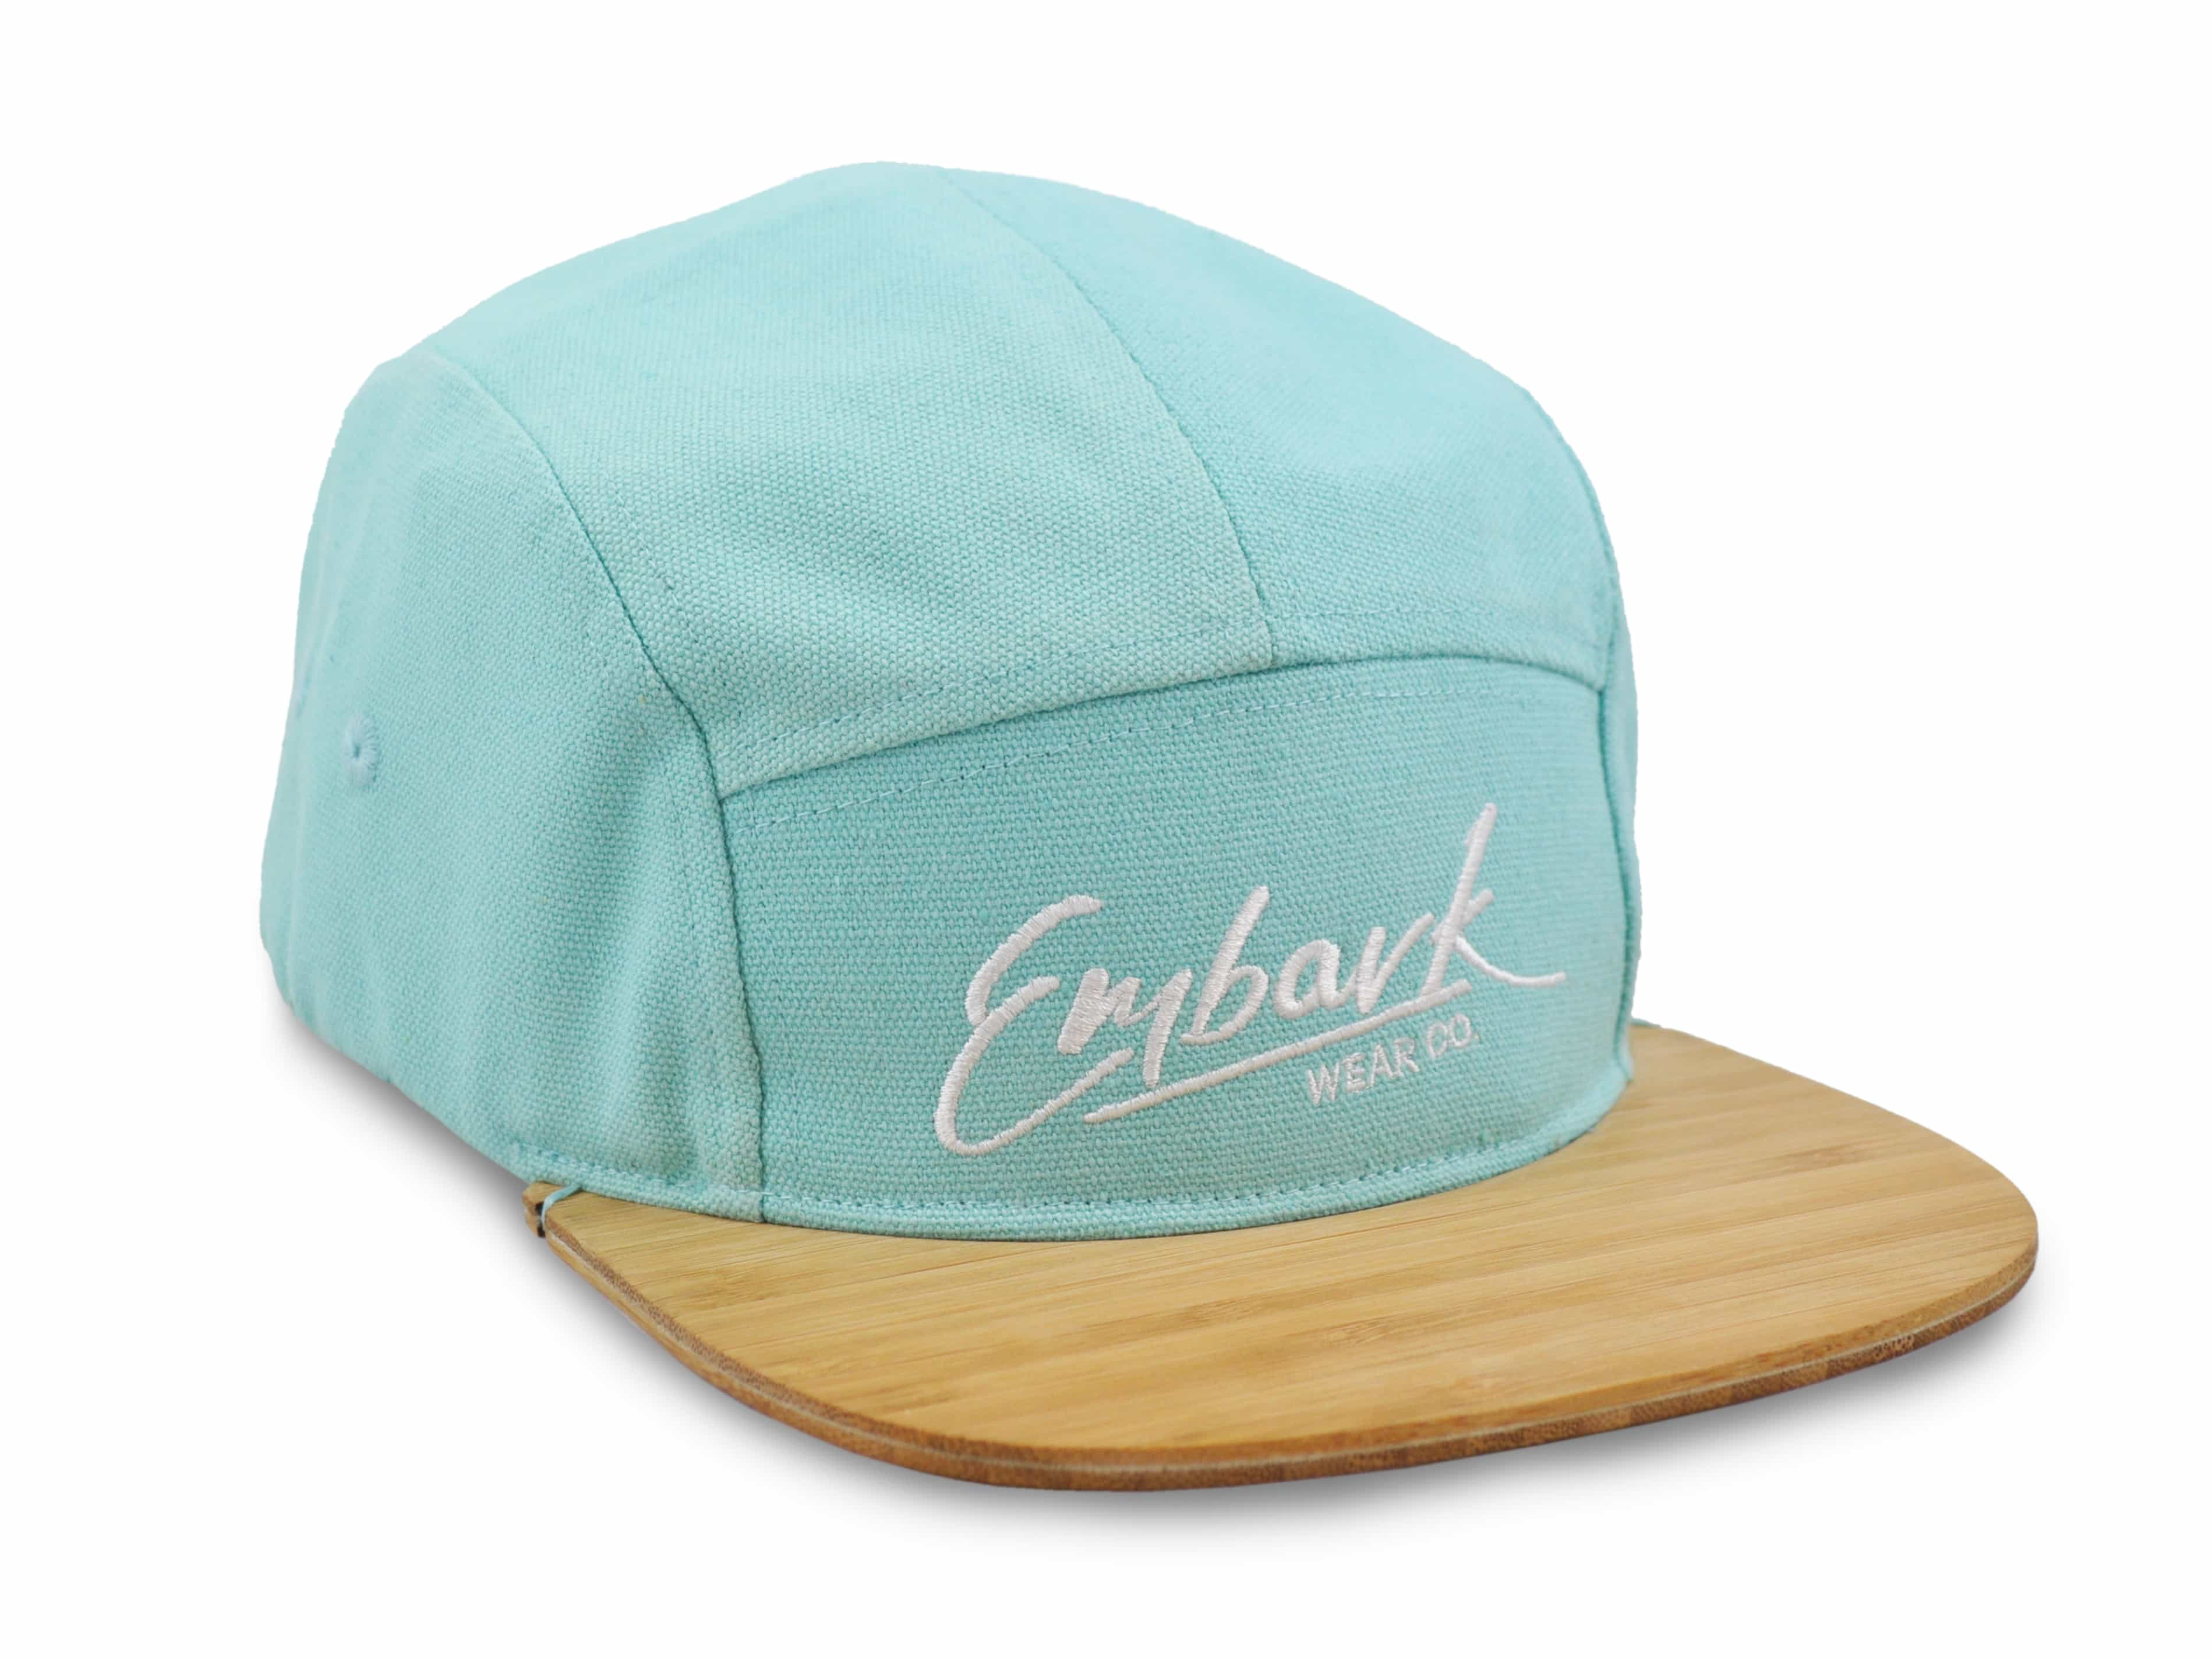 [Premium Quality Unique Caps & T-Shirts Online] - Embark Wear Co.